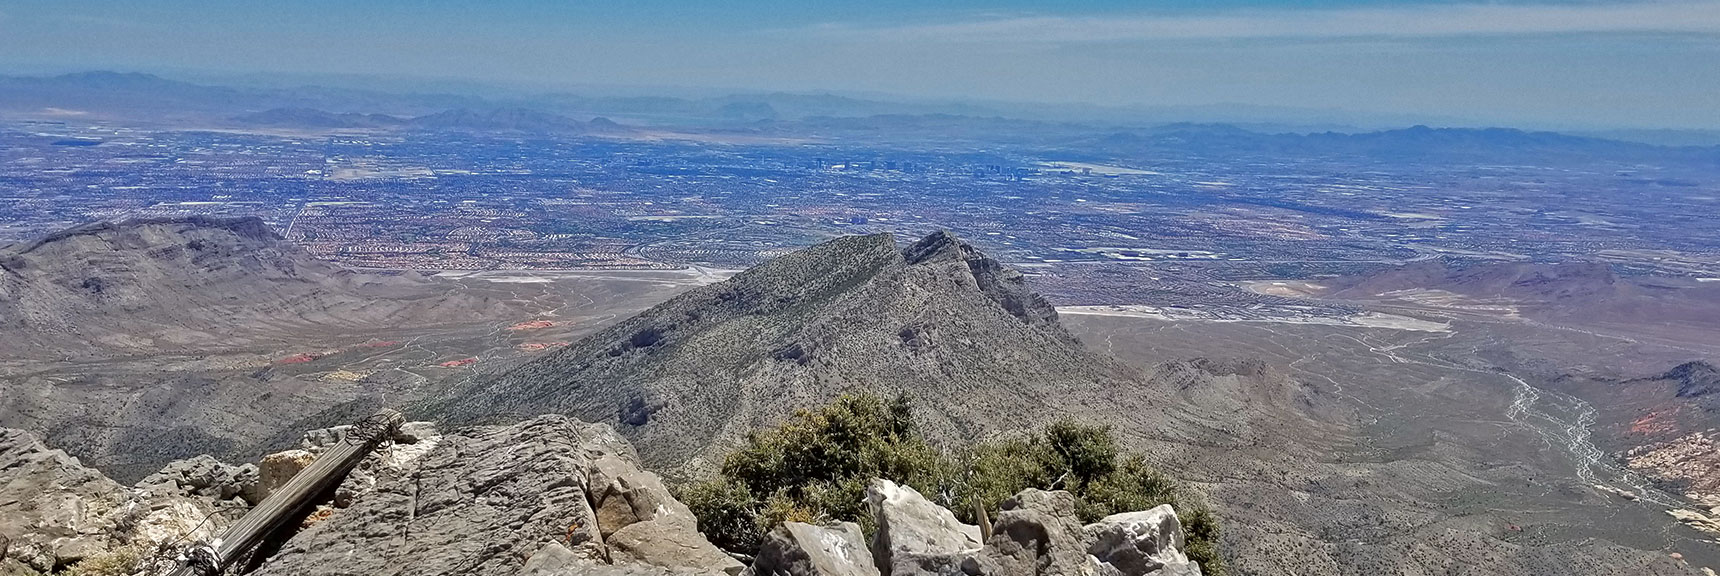 View of Las Vegas Valley from Summit of La Madre Mountain | La Madre Mountain Northern Approach, Nevada